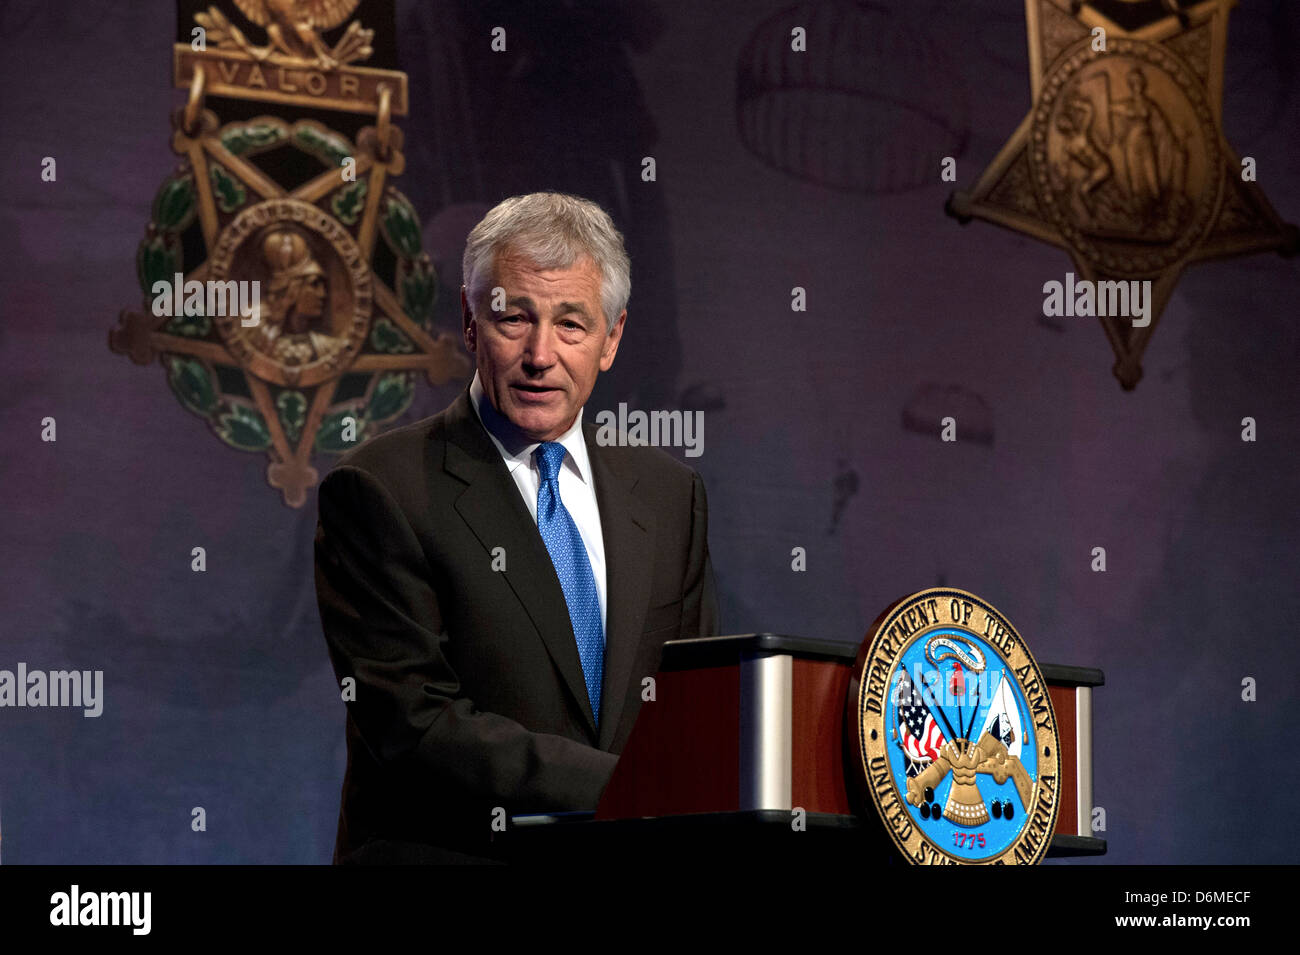 US Secretary of Defense Chuck Hagel speaks during a ceremony inducing Army Chaplain Emil Kapaun posthumously into - Stock Image